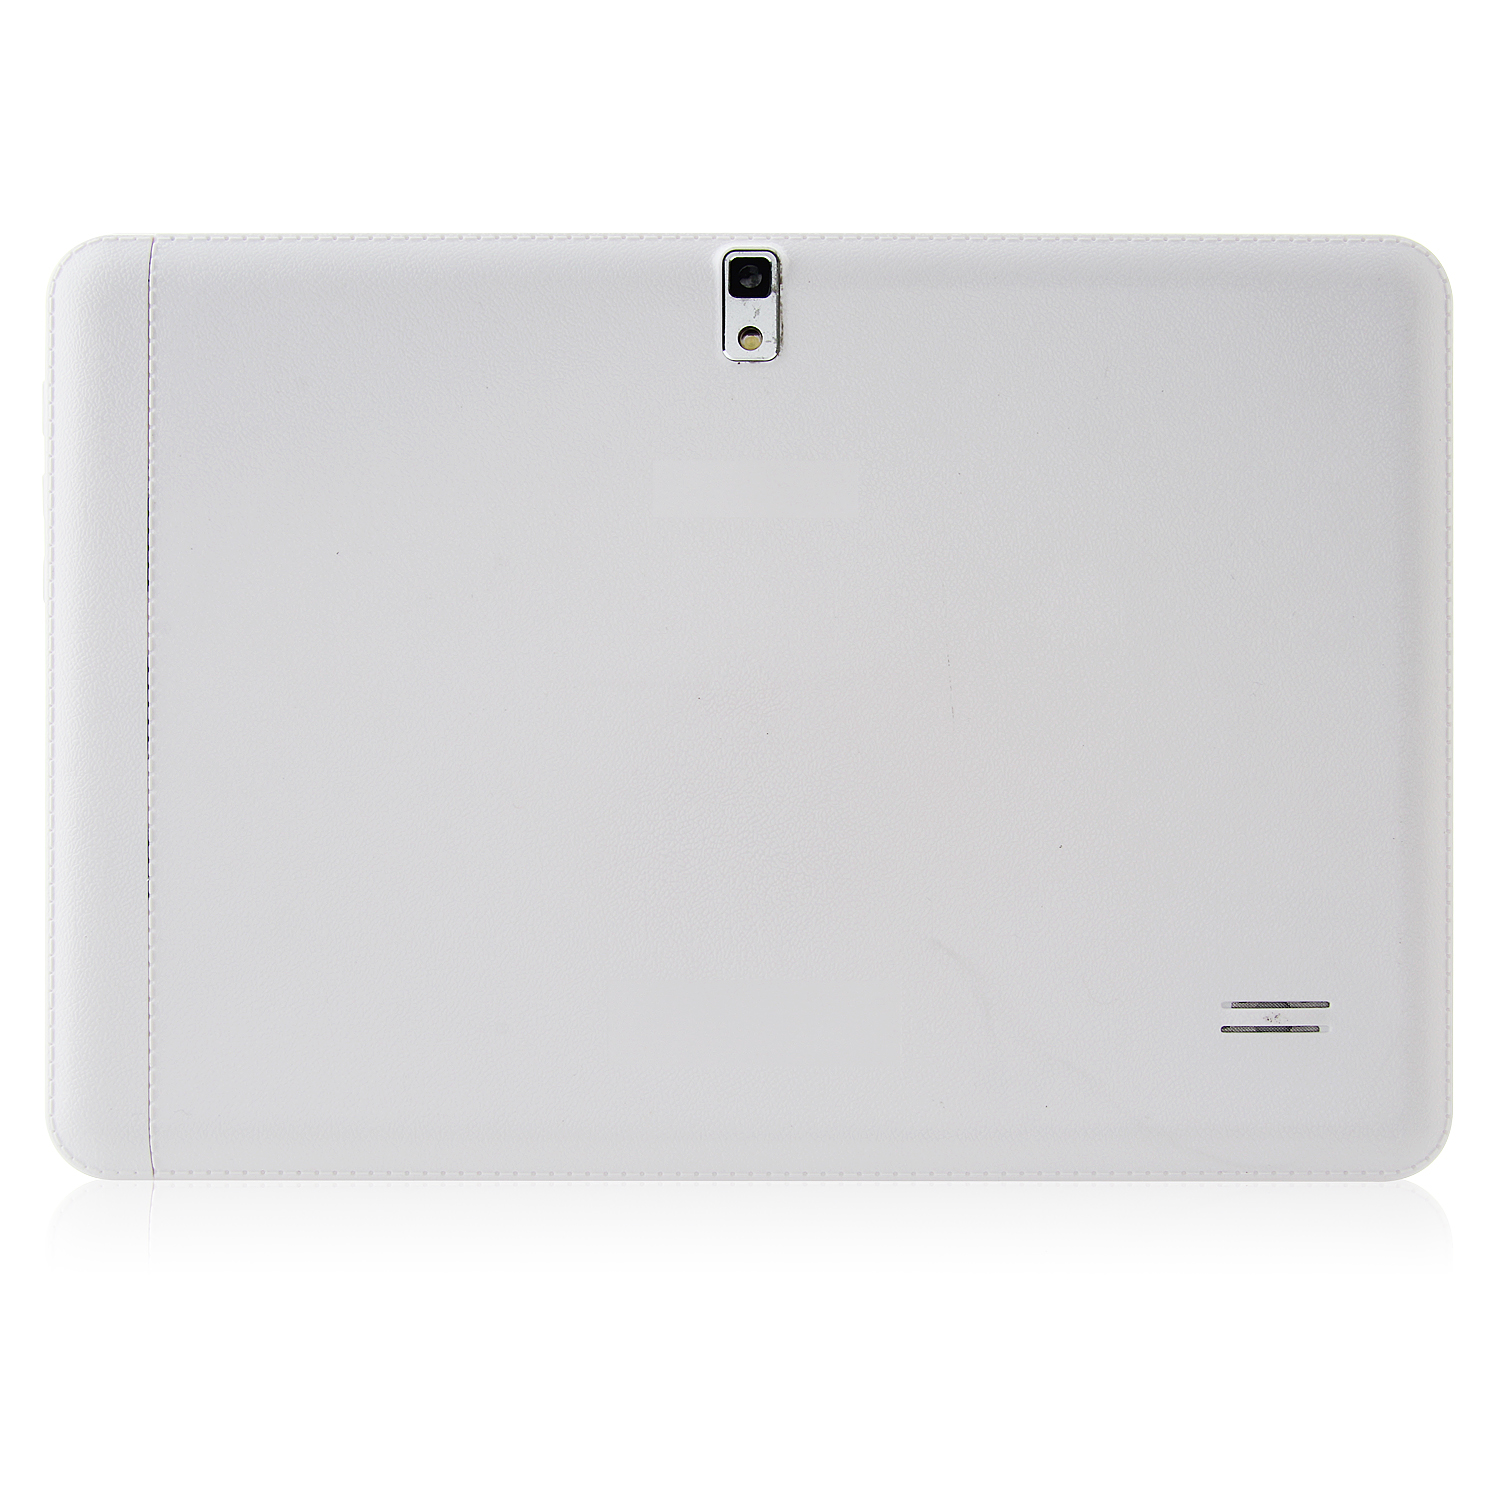 N9106 3G Tablet PC 10.1 Inch Dual Core MTK6572W Android 4.4 8GB WCDMA White